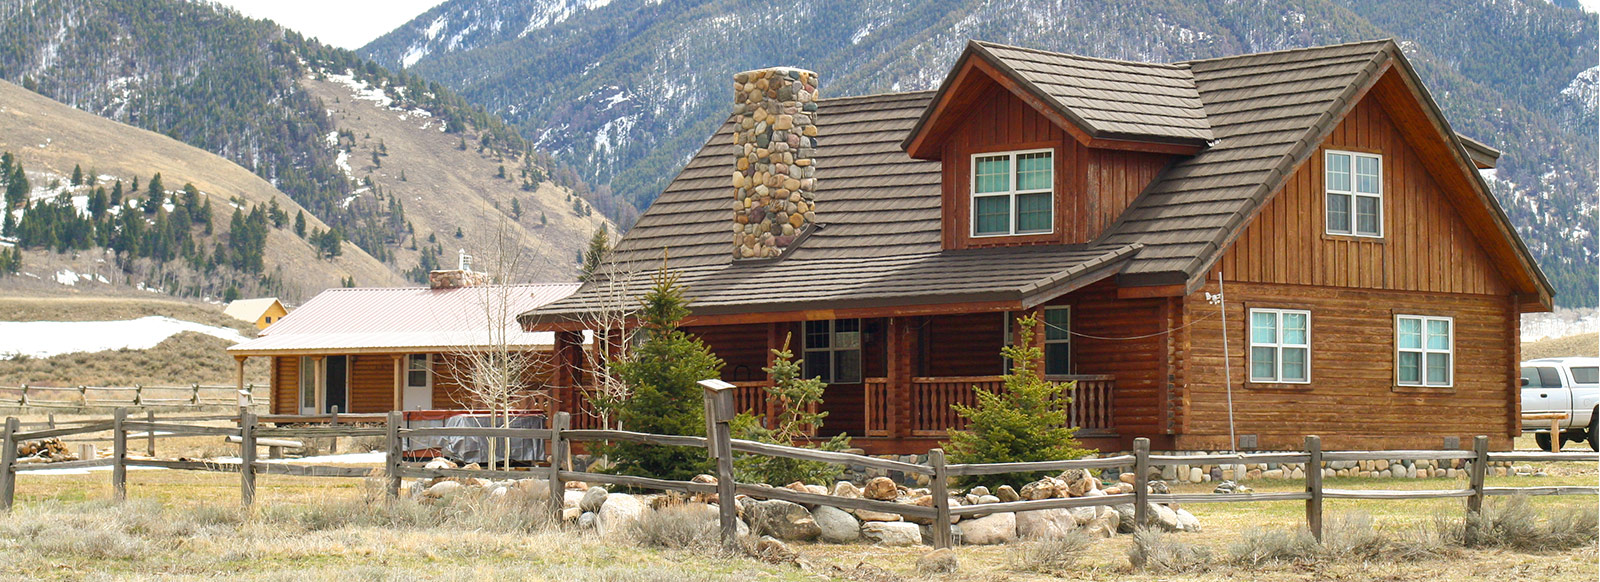 Montana spirit guest lodge fly fishing on the madison river for Montana fishing lodges